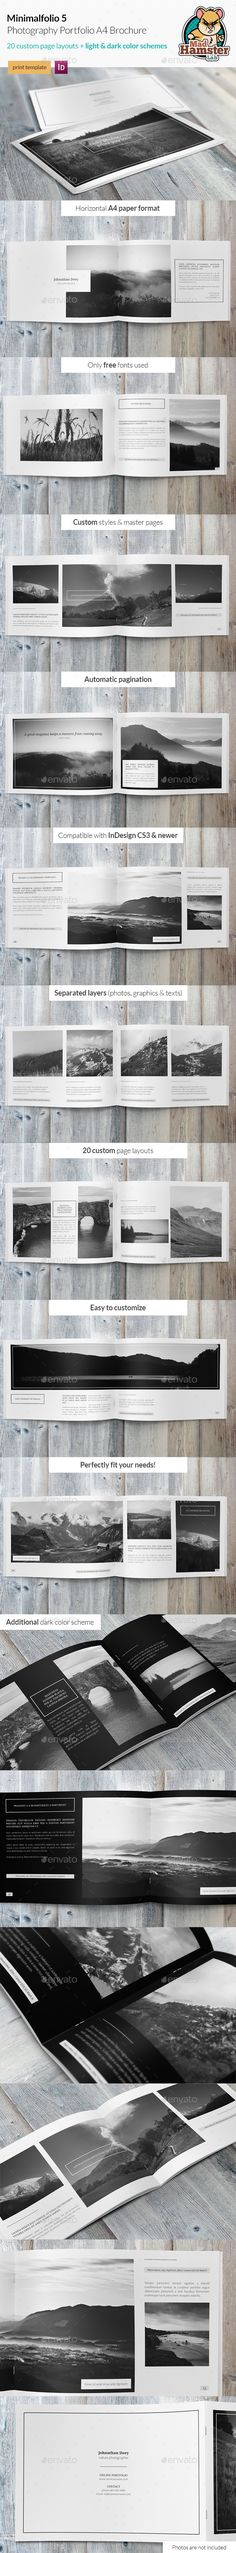 Minimalfolio 5 Photography Portfolio A4 Brochure — InDesign INDD #catalog #clean • Available here → https://graphicriver.net/item/minimalfolio-5-photography-portfolio-a4-brochure/9584227?ref=pxcr